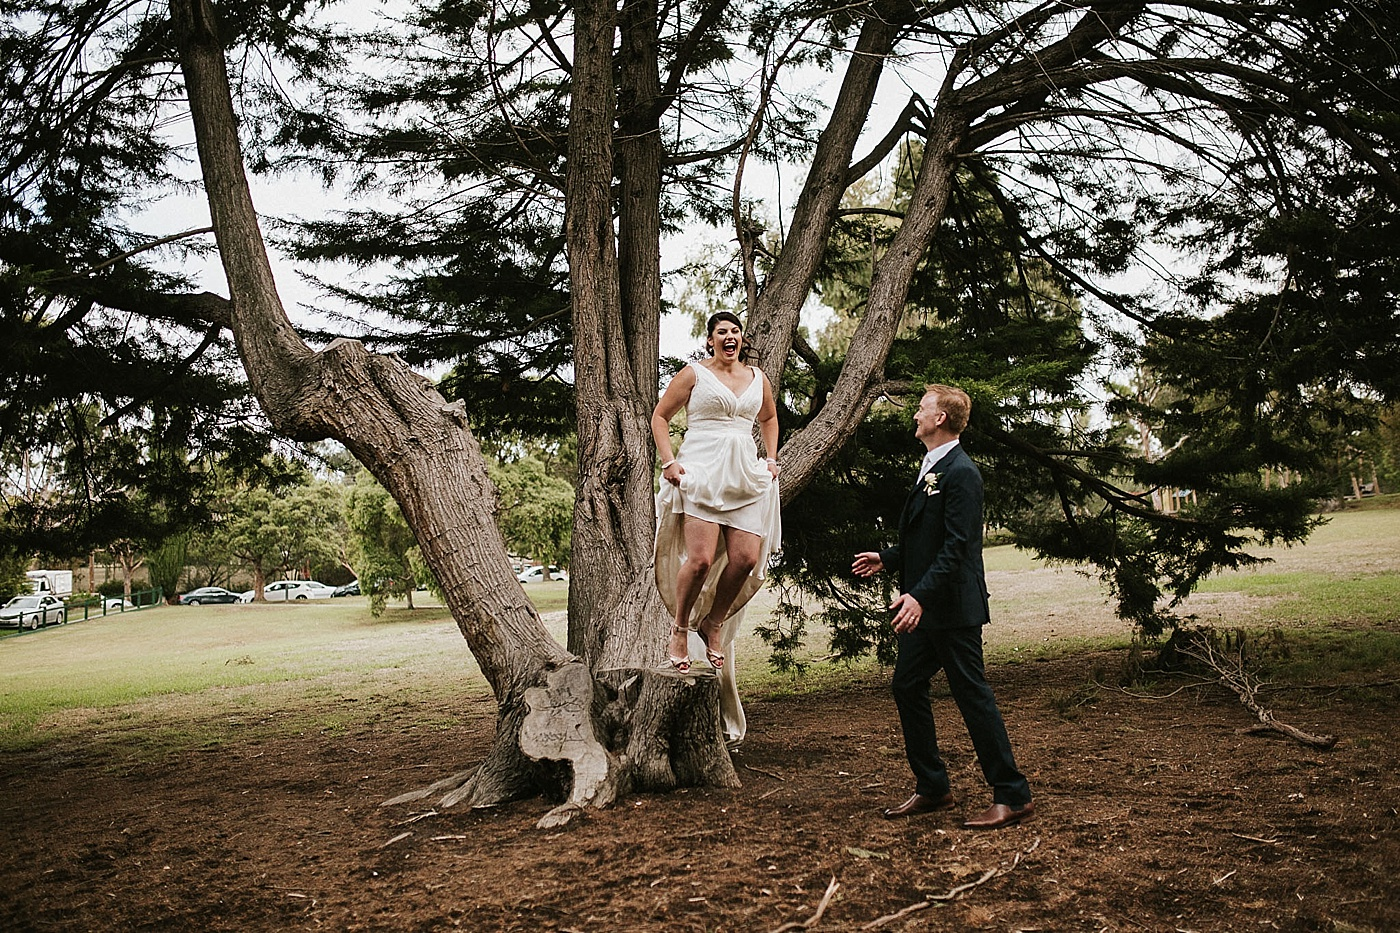 Brooke&David_Melbourne-Quirky-Relaxed-Fun-Casual-Backyard-Wedding_Melbourne-Wedding-Photography-65